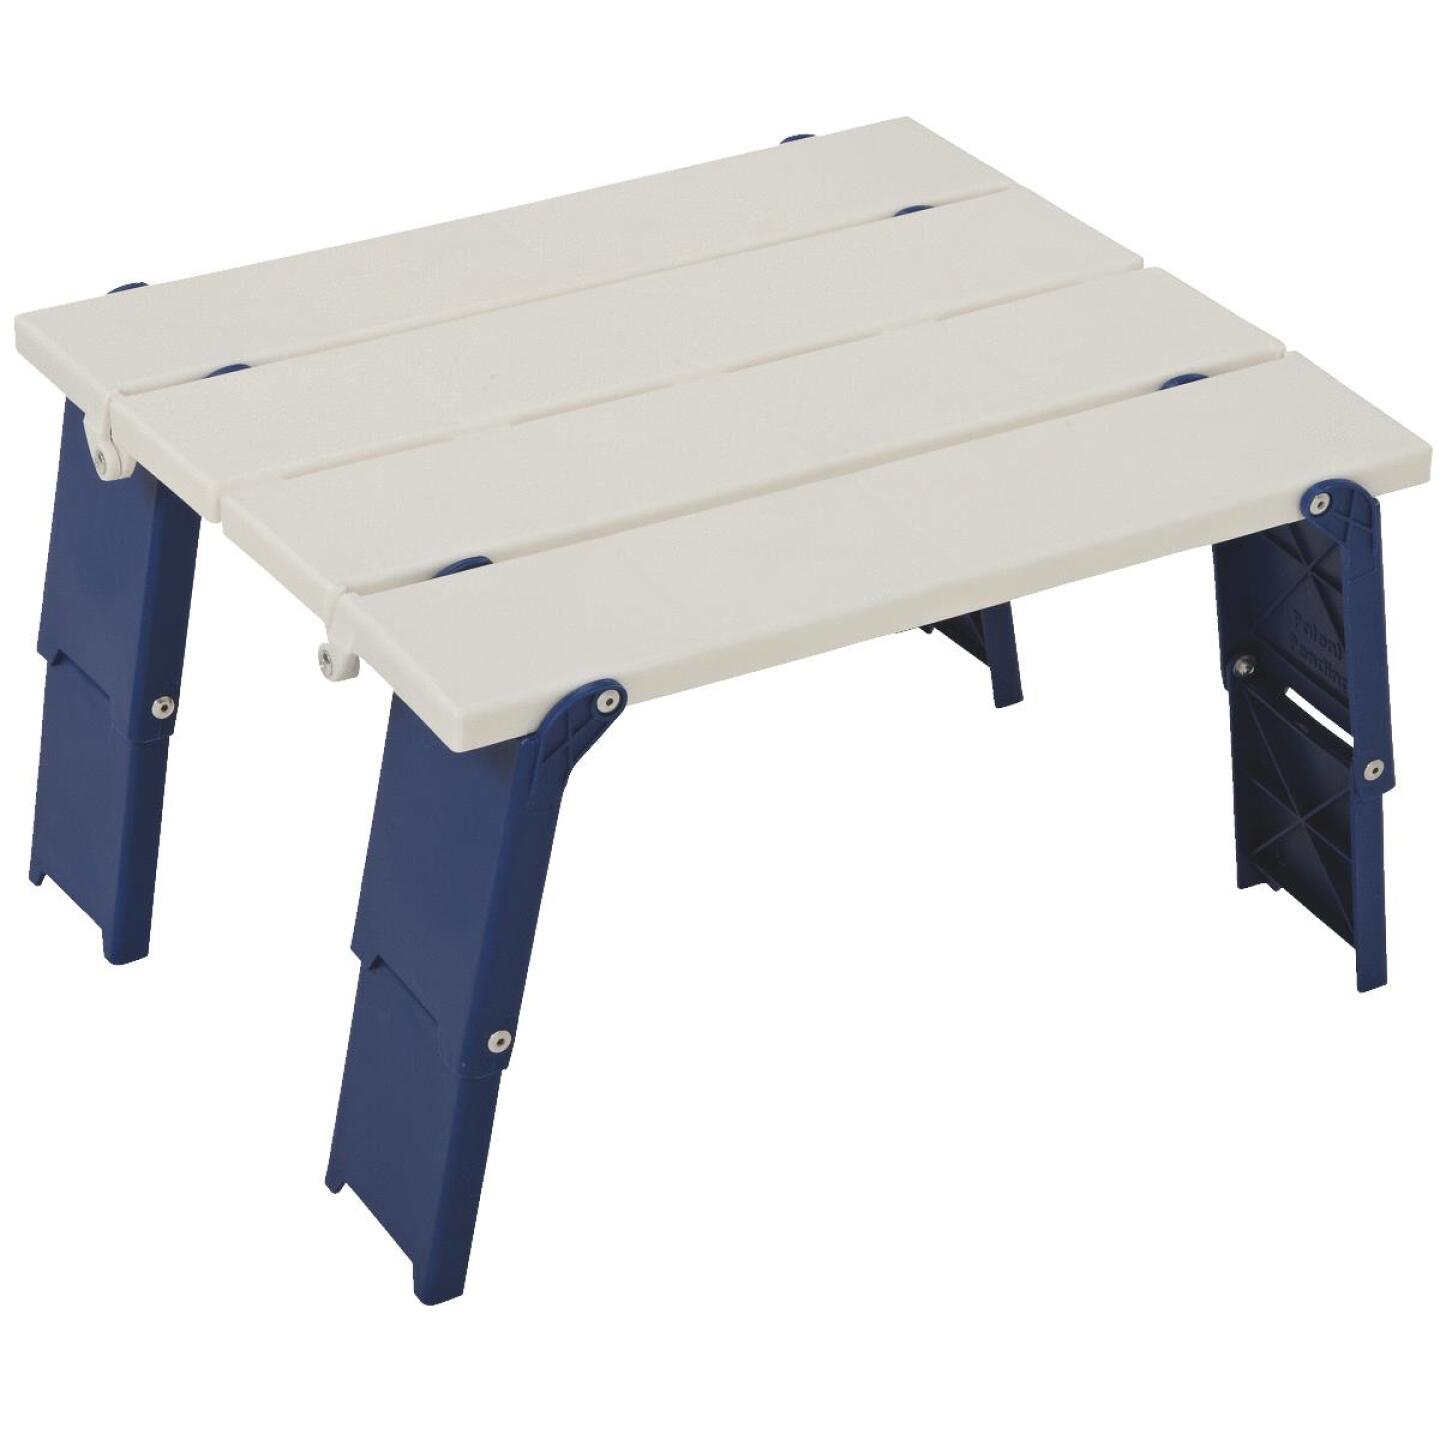 Rio Personal White 14 In. W. x 16 In. L. Rectangle Plastic Folding Side Table Image 2